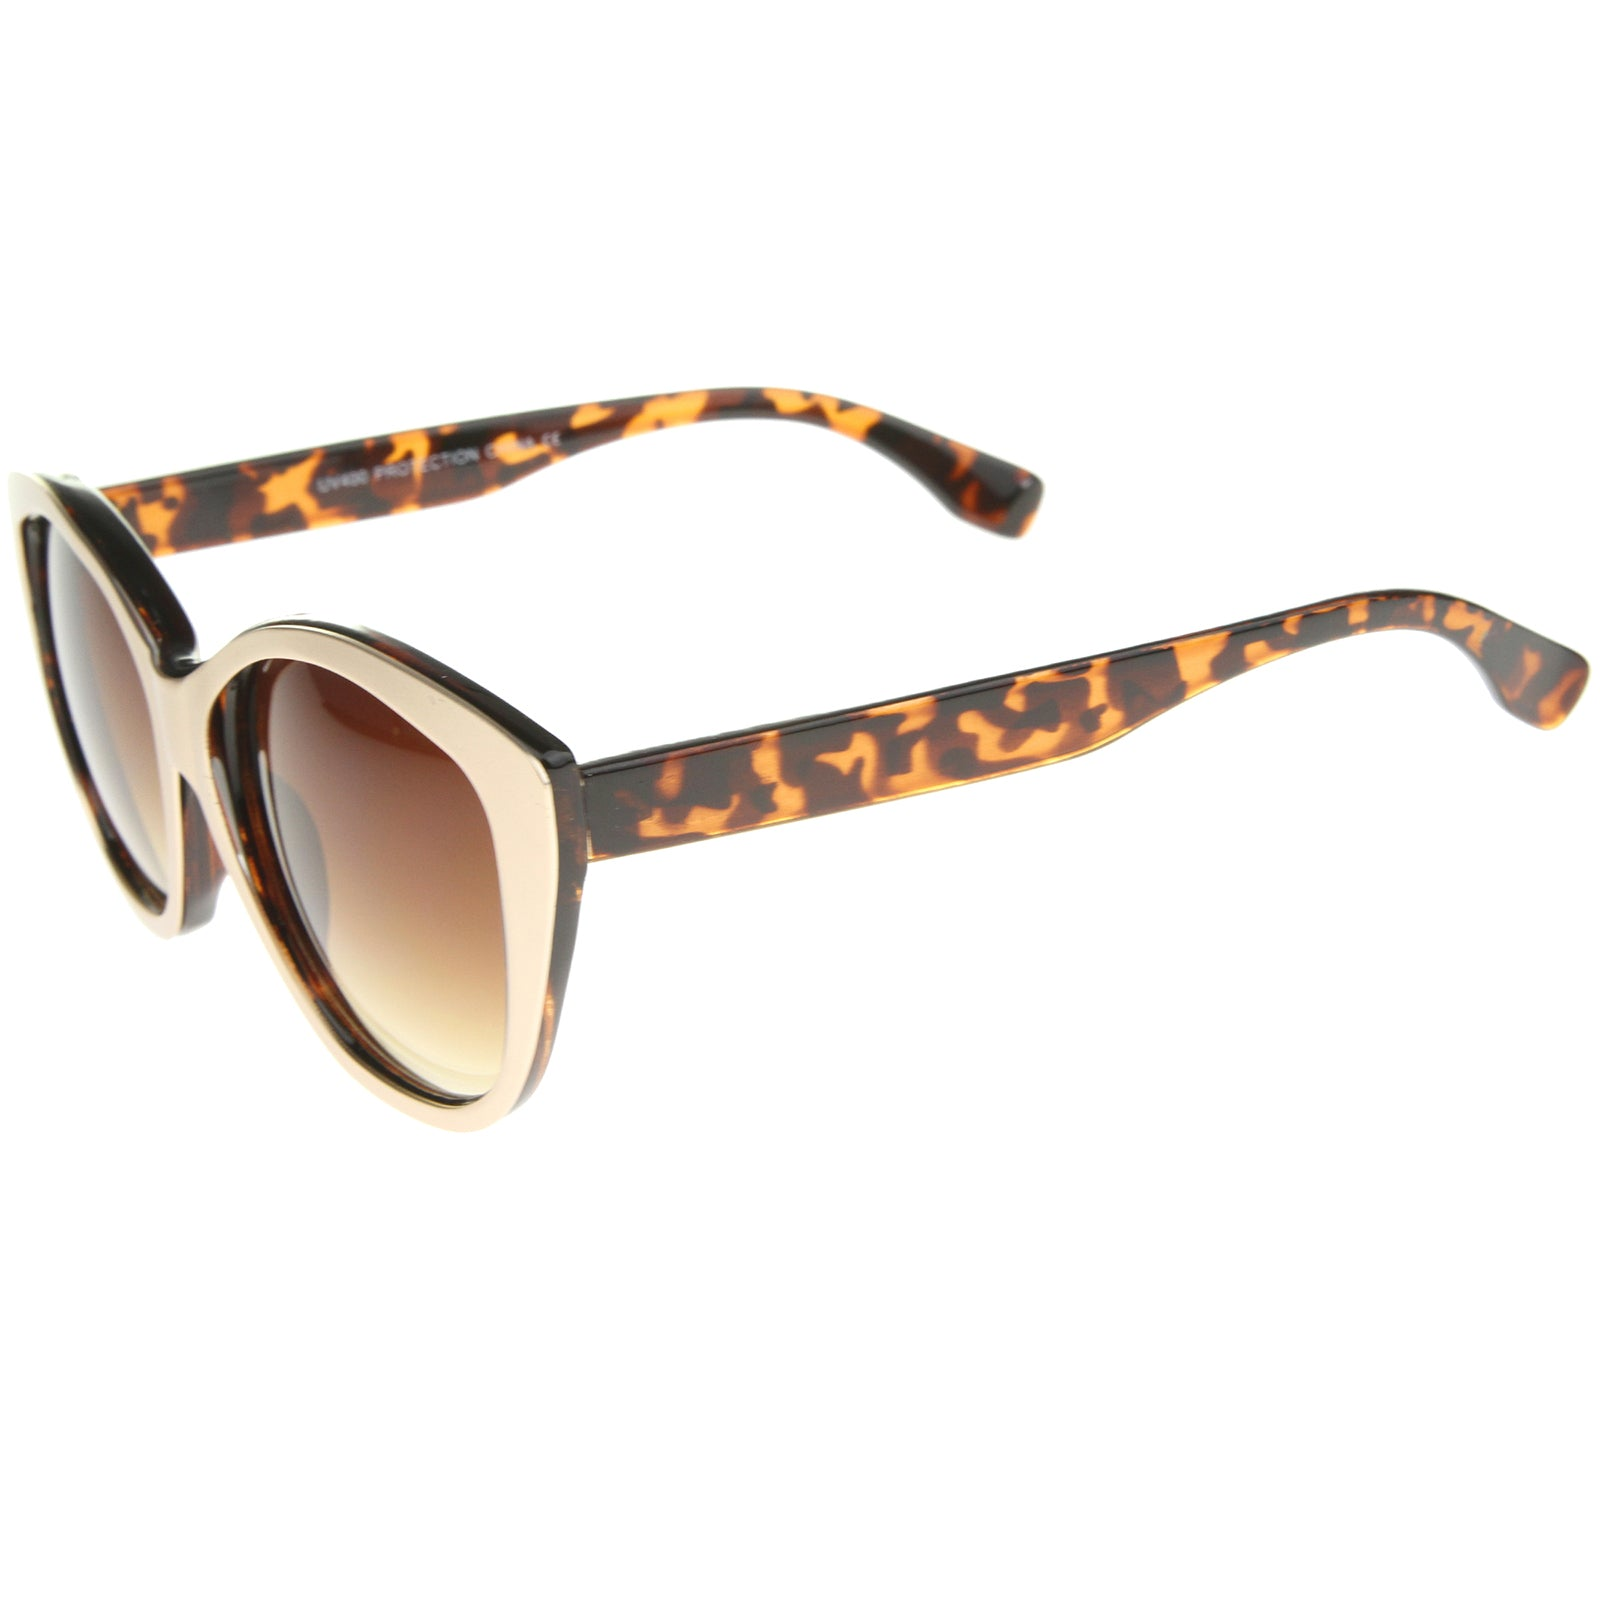 Women's High Fashion Two-Toned Tinted Lens Oversize Cat Eye Sunglasses 55mm - sunglass.la - 15